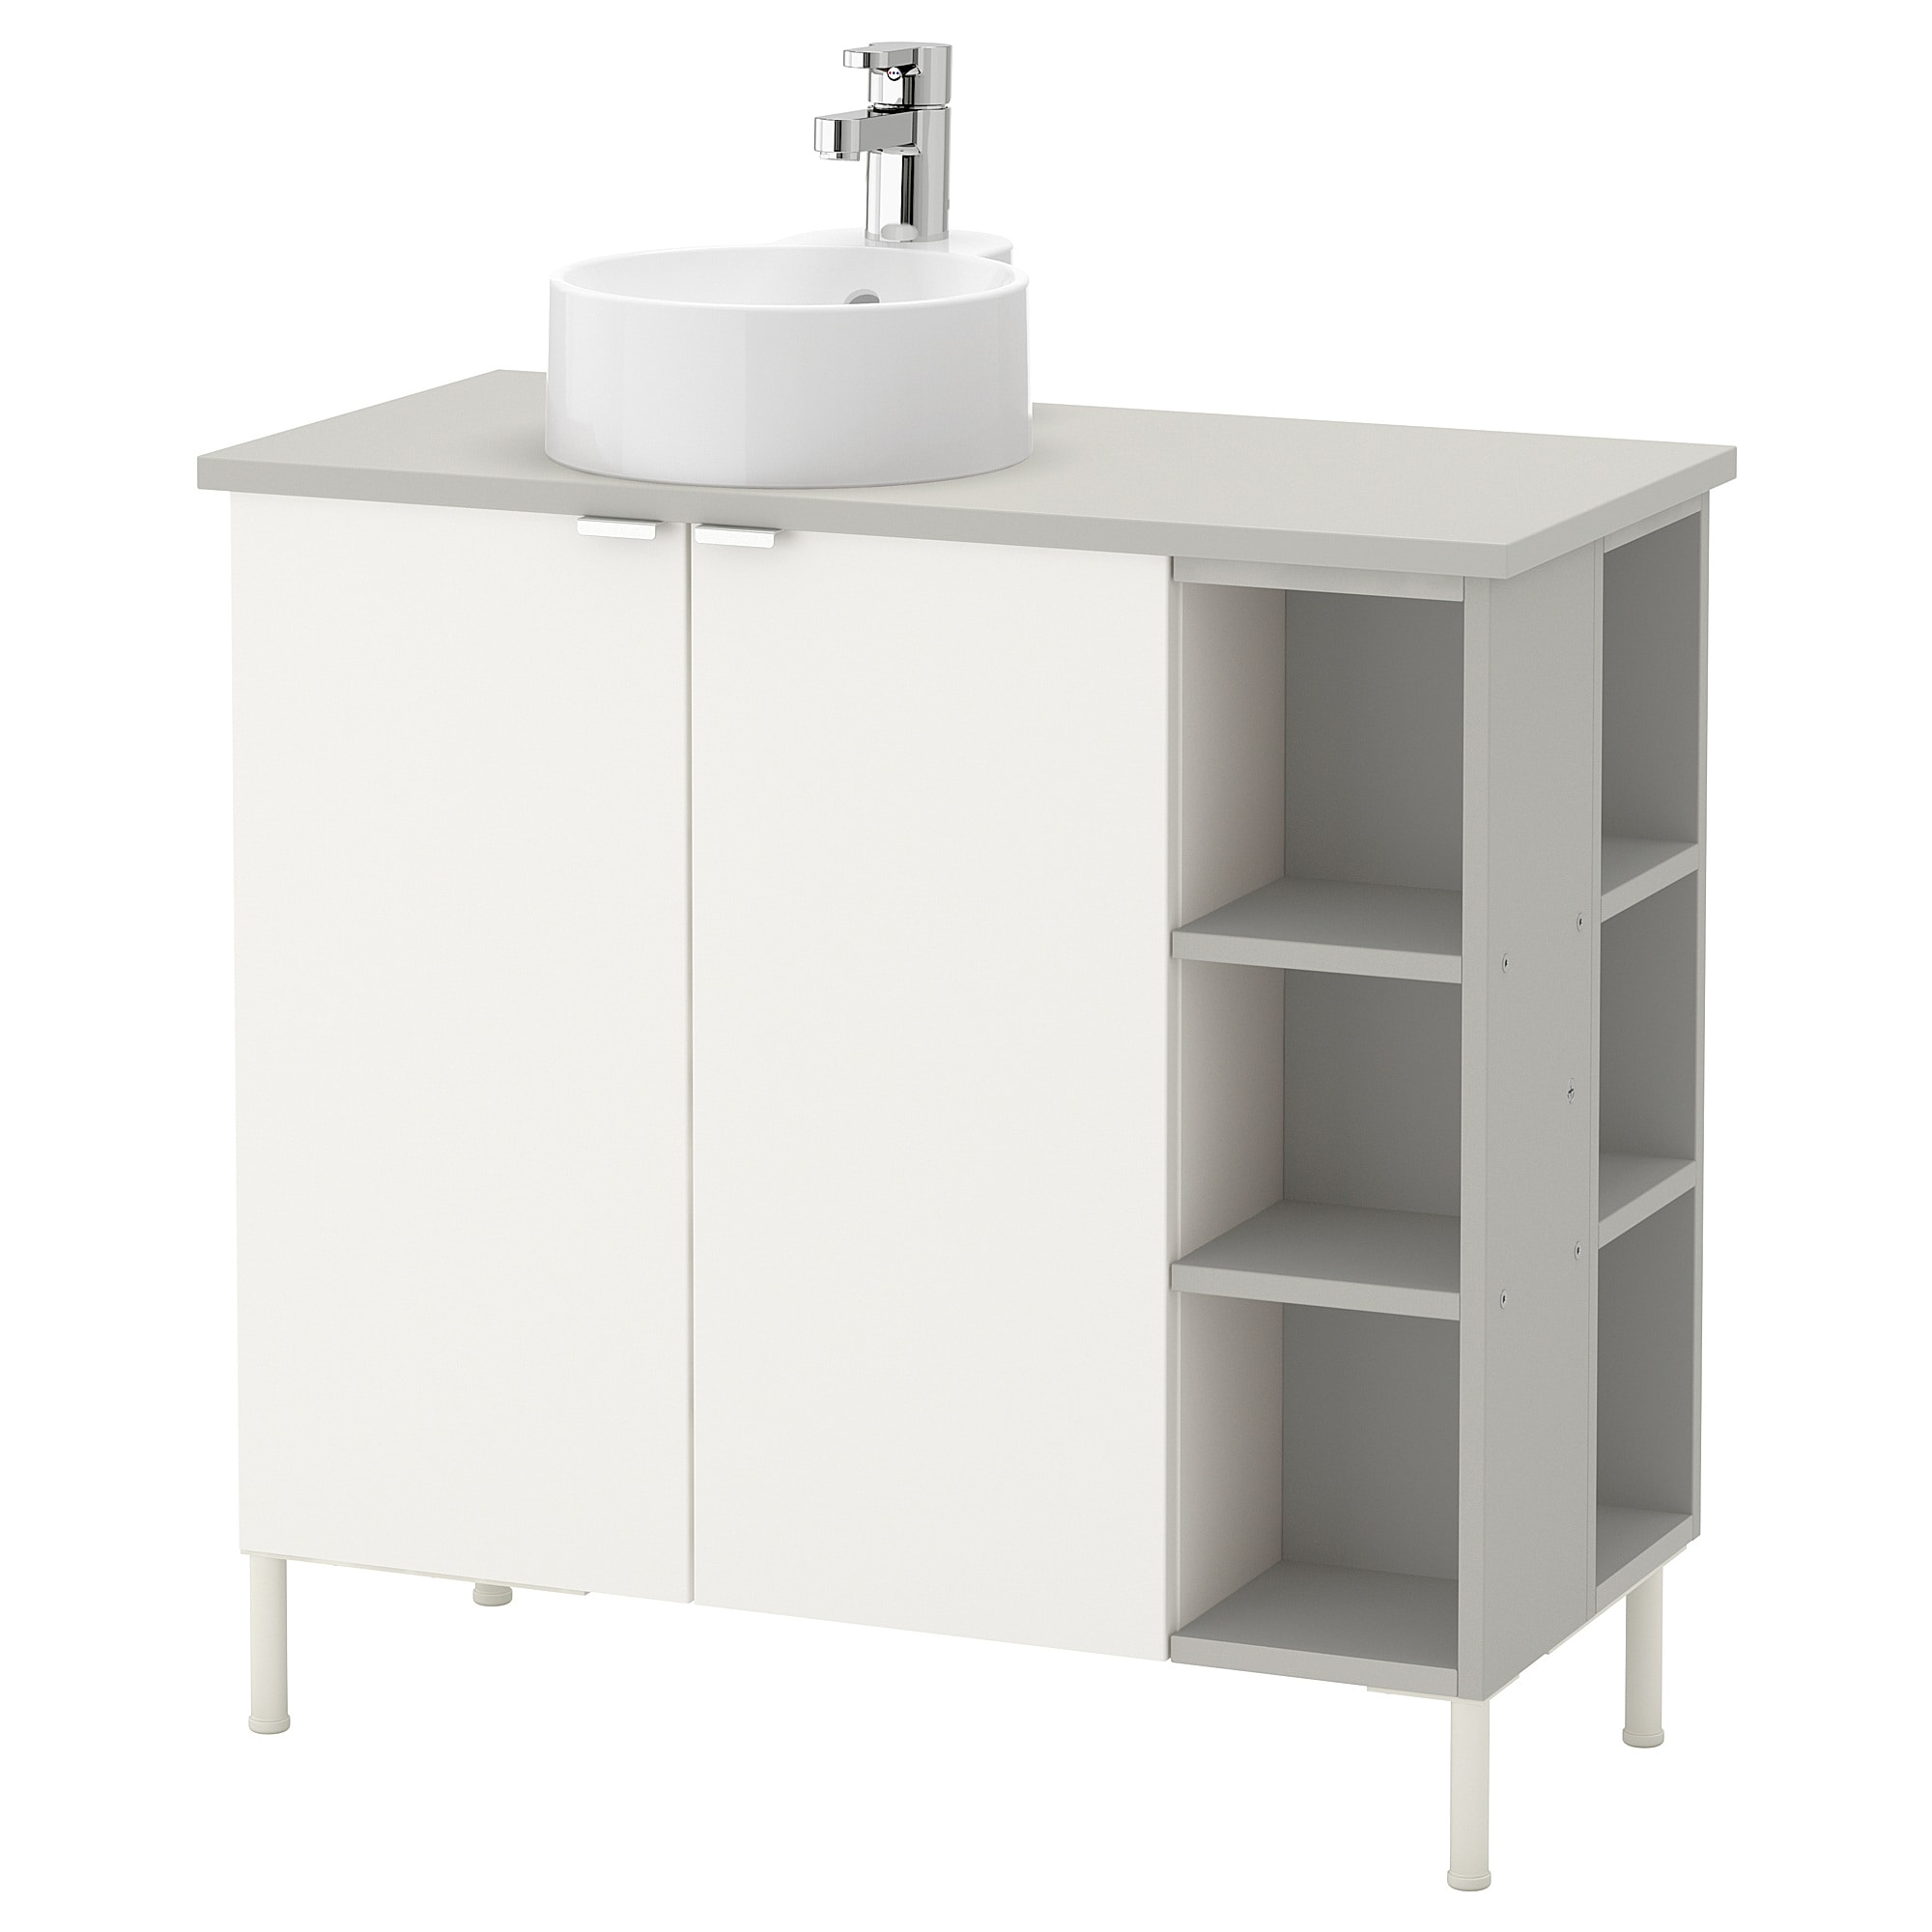 LILLÅNGEN/VISKAN / GUTVIKEN Sink Cabinet/2 Doors/2 End Units